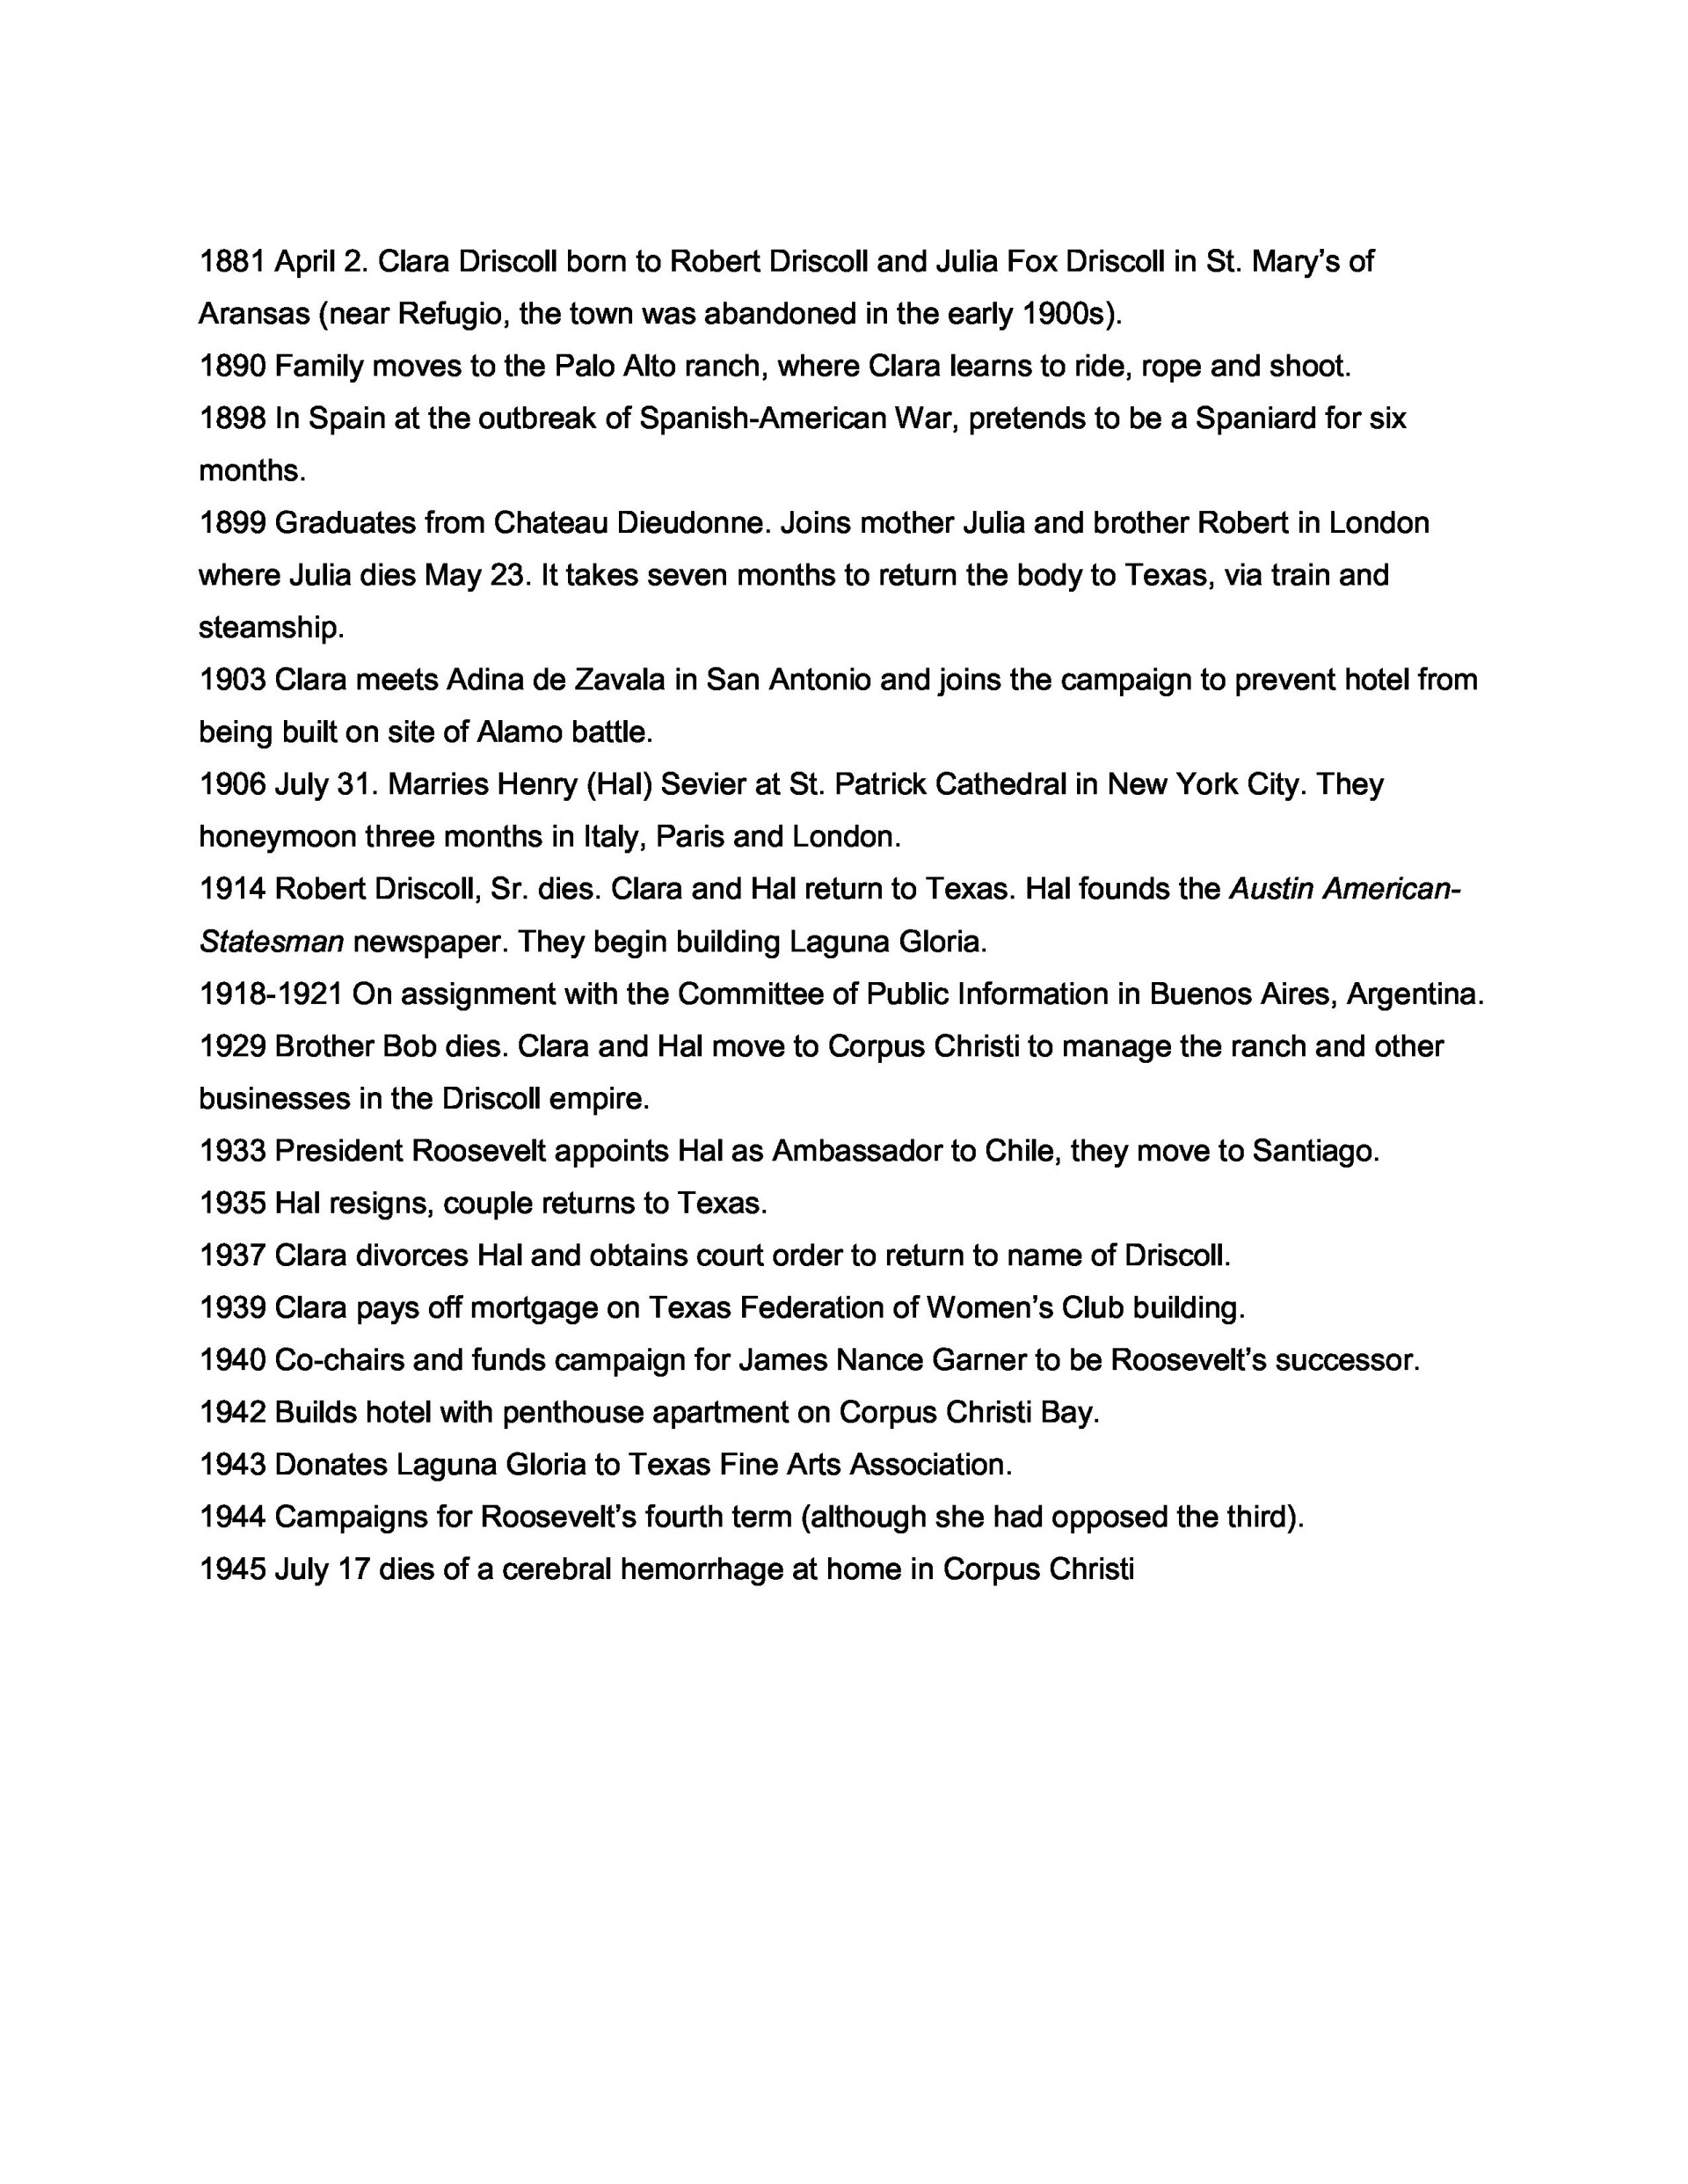 011 Driscoll Timeline Essay Example Sample Unforgettable Biography About Myself Elementary Self 1920